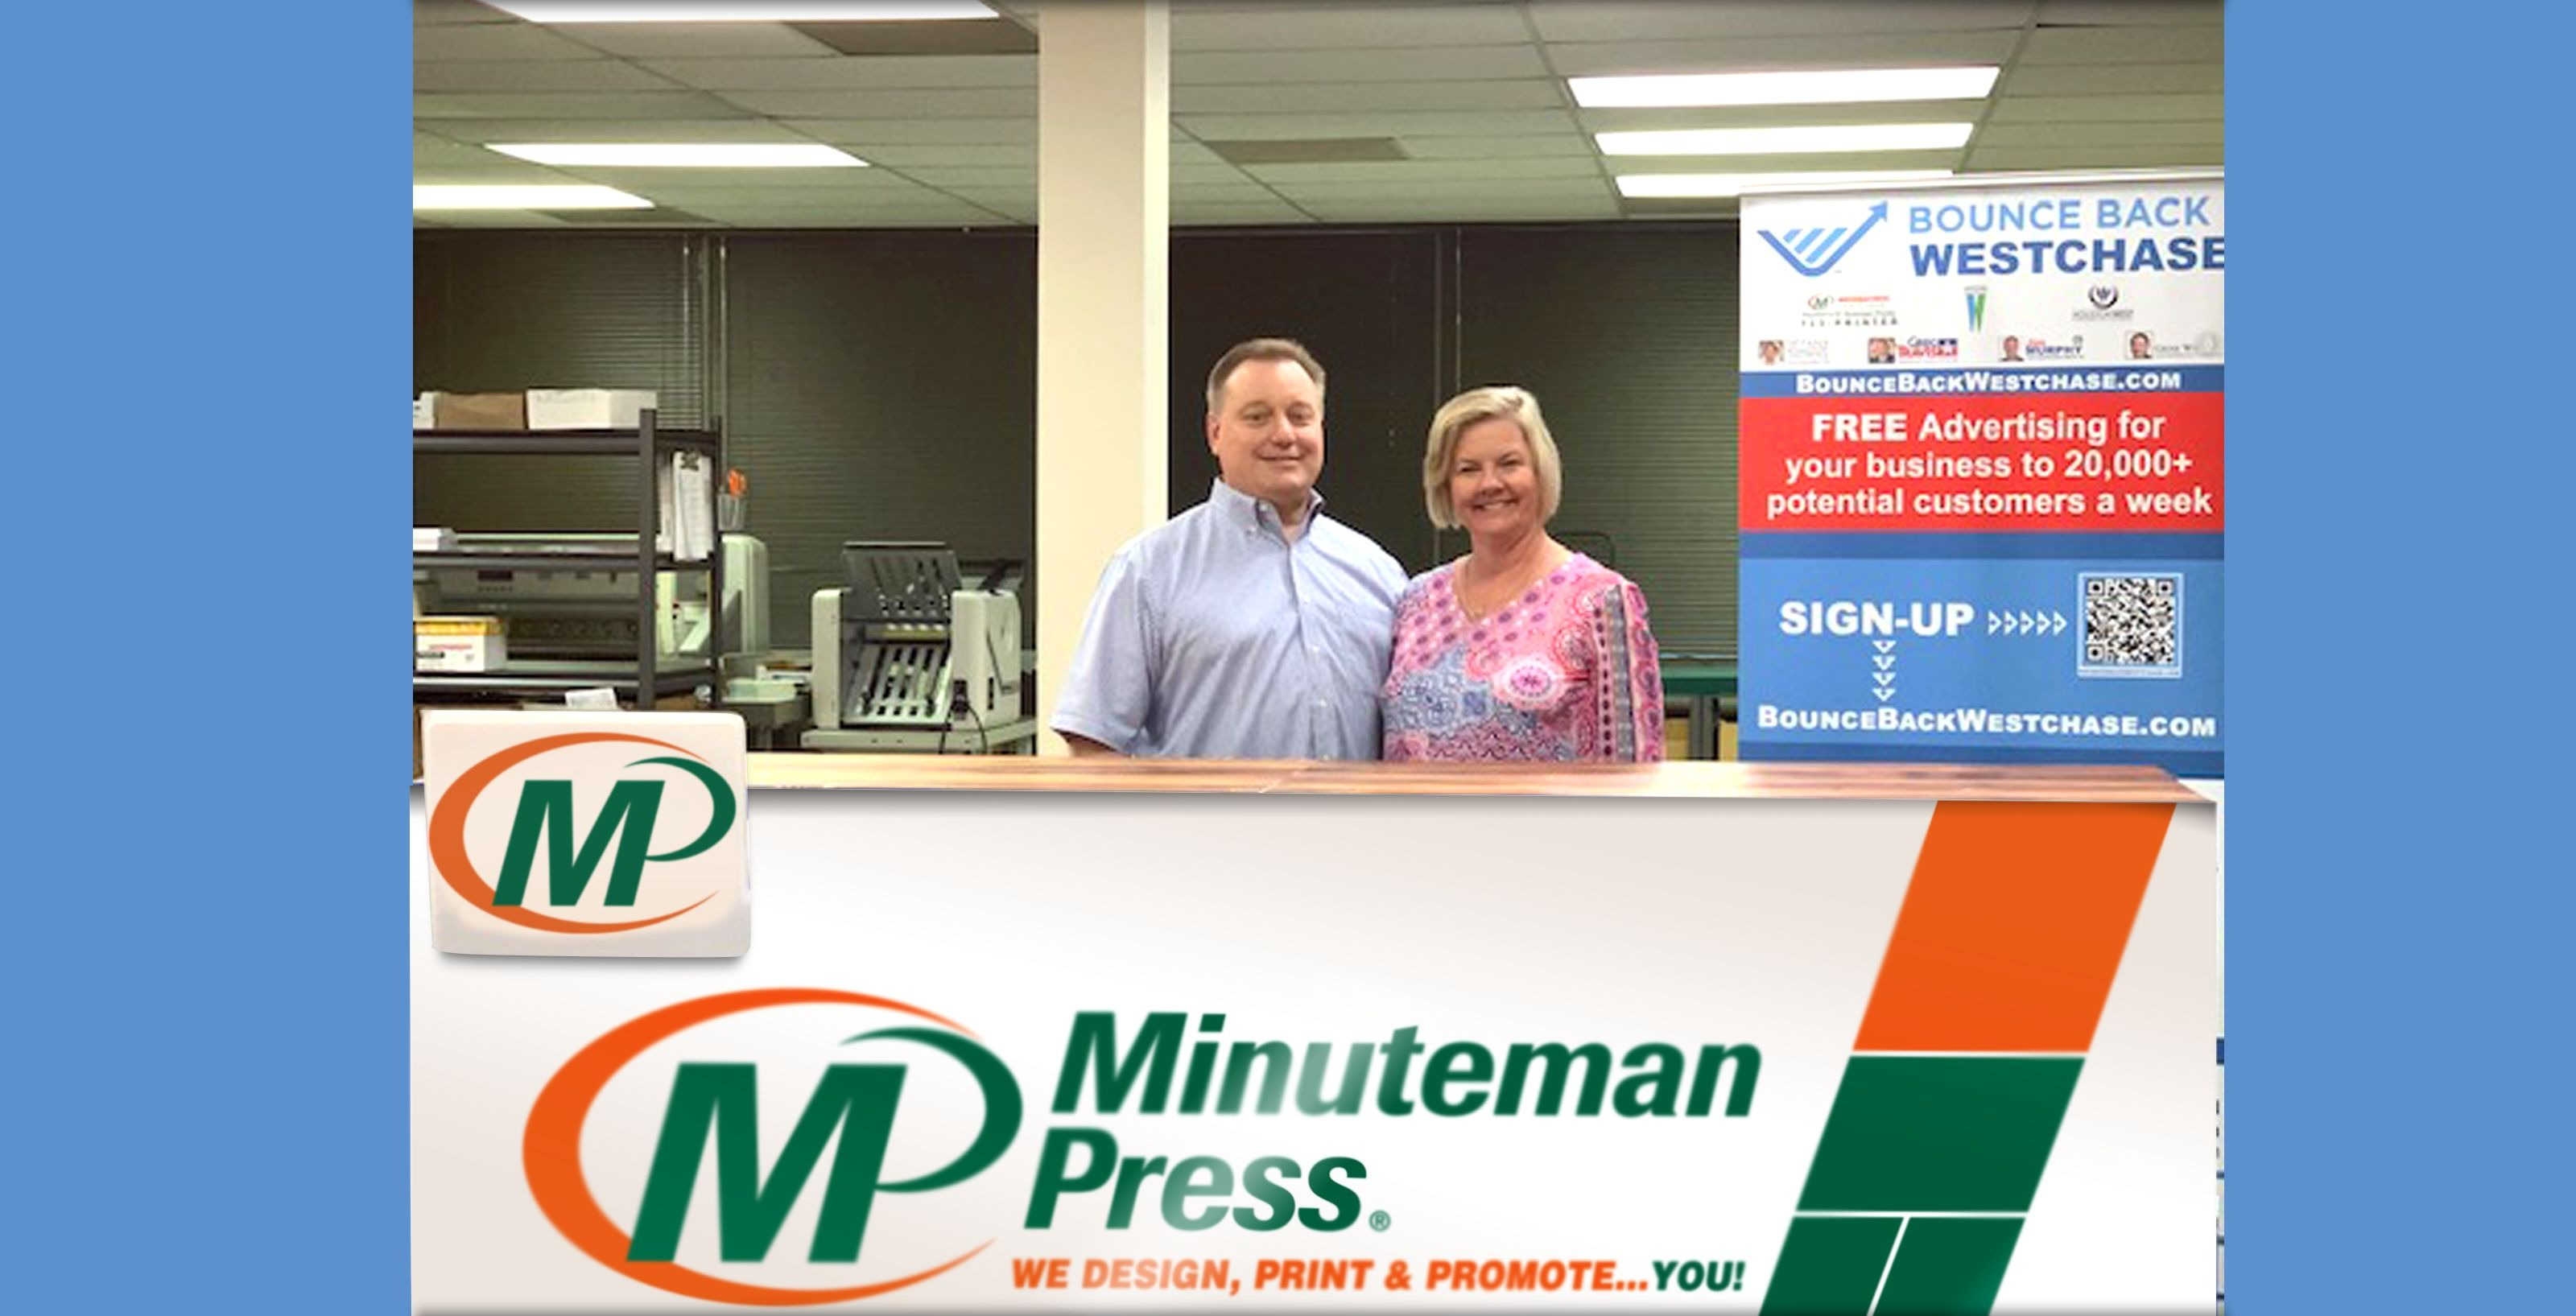 Minuteman Press Franchise helps local businesses bounce back